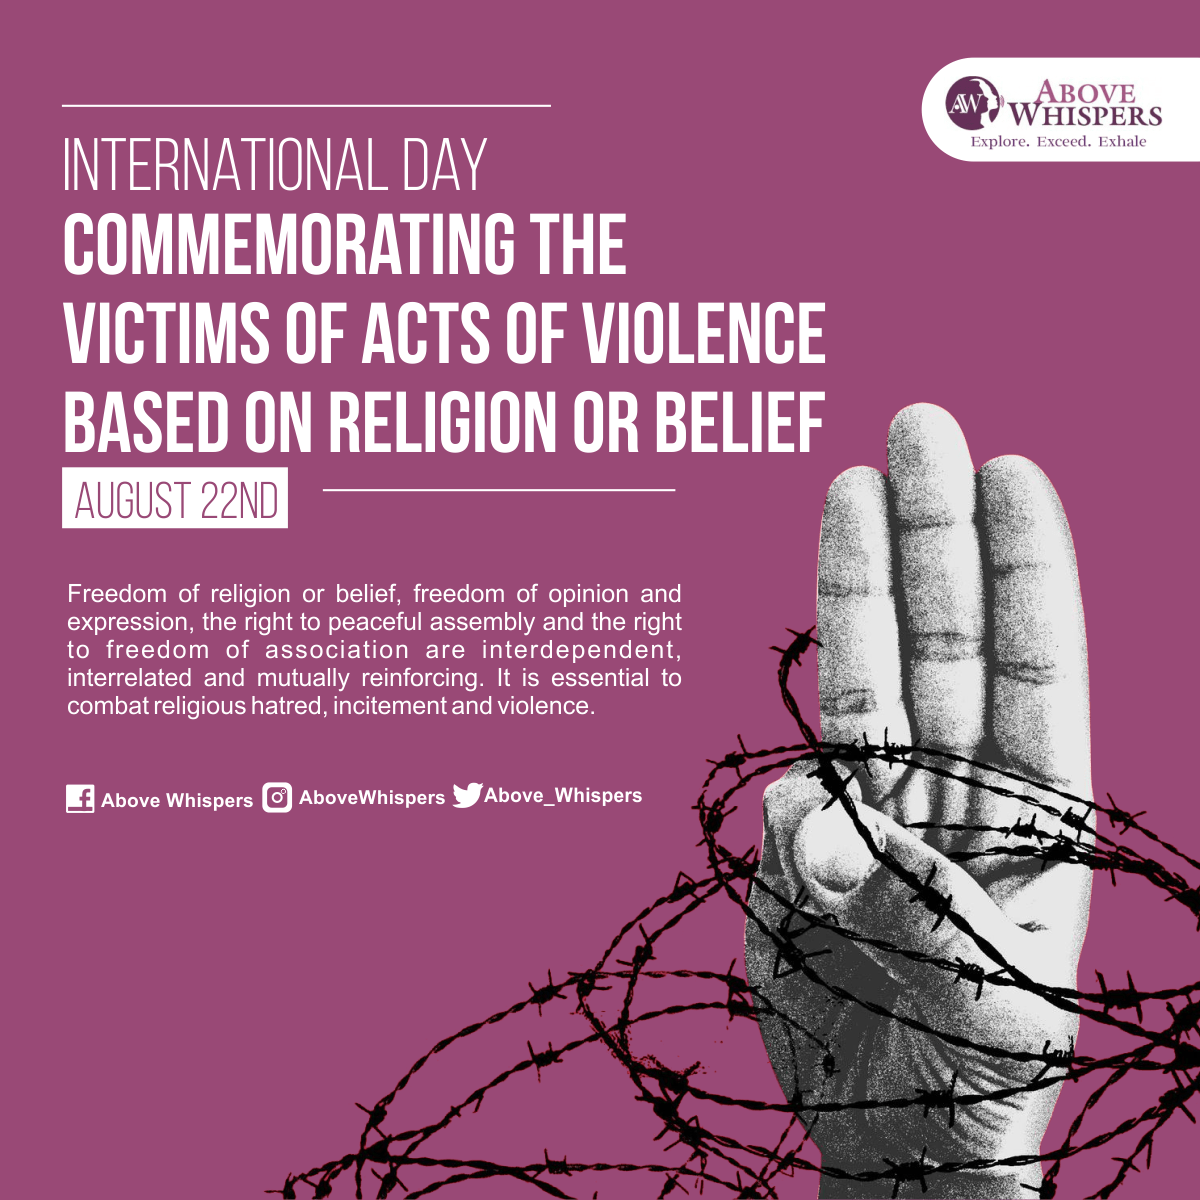 International Day of Violence based on religion or belief (1)